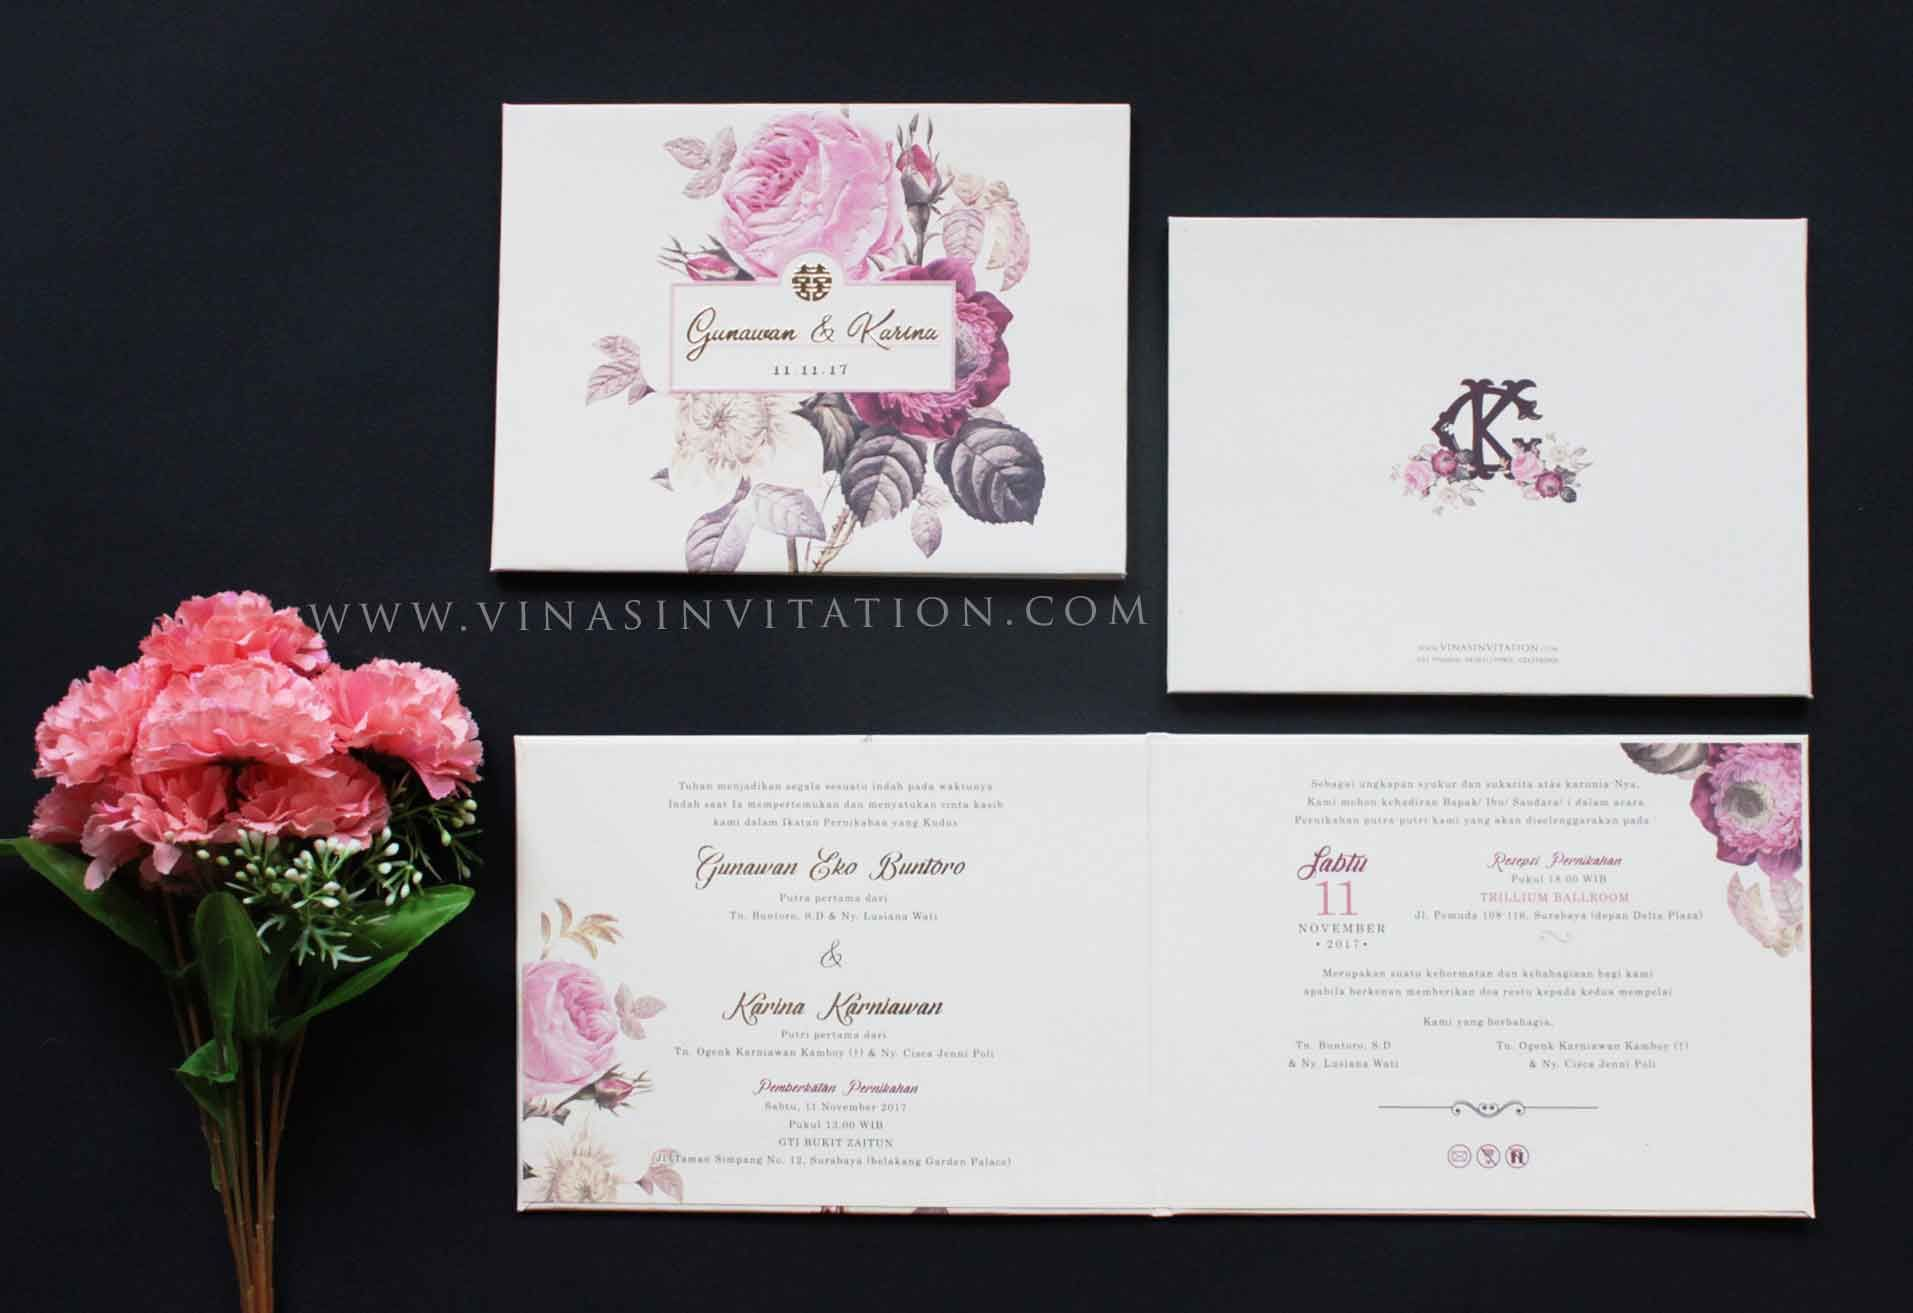 Vinas invitation flower blossom flower theme wedding invitation vinas invitation flower blossom flower theme wedding invitation semarang wedding invitation sydney wedding invitation surabaya custom wedding stopboris Gallery